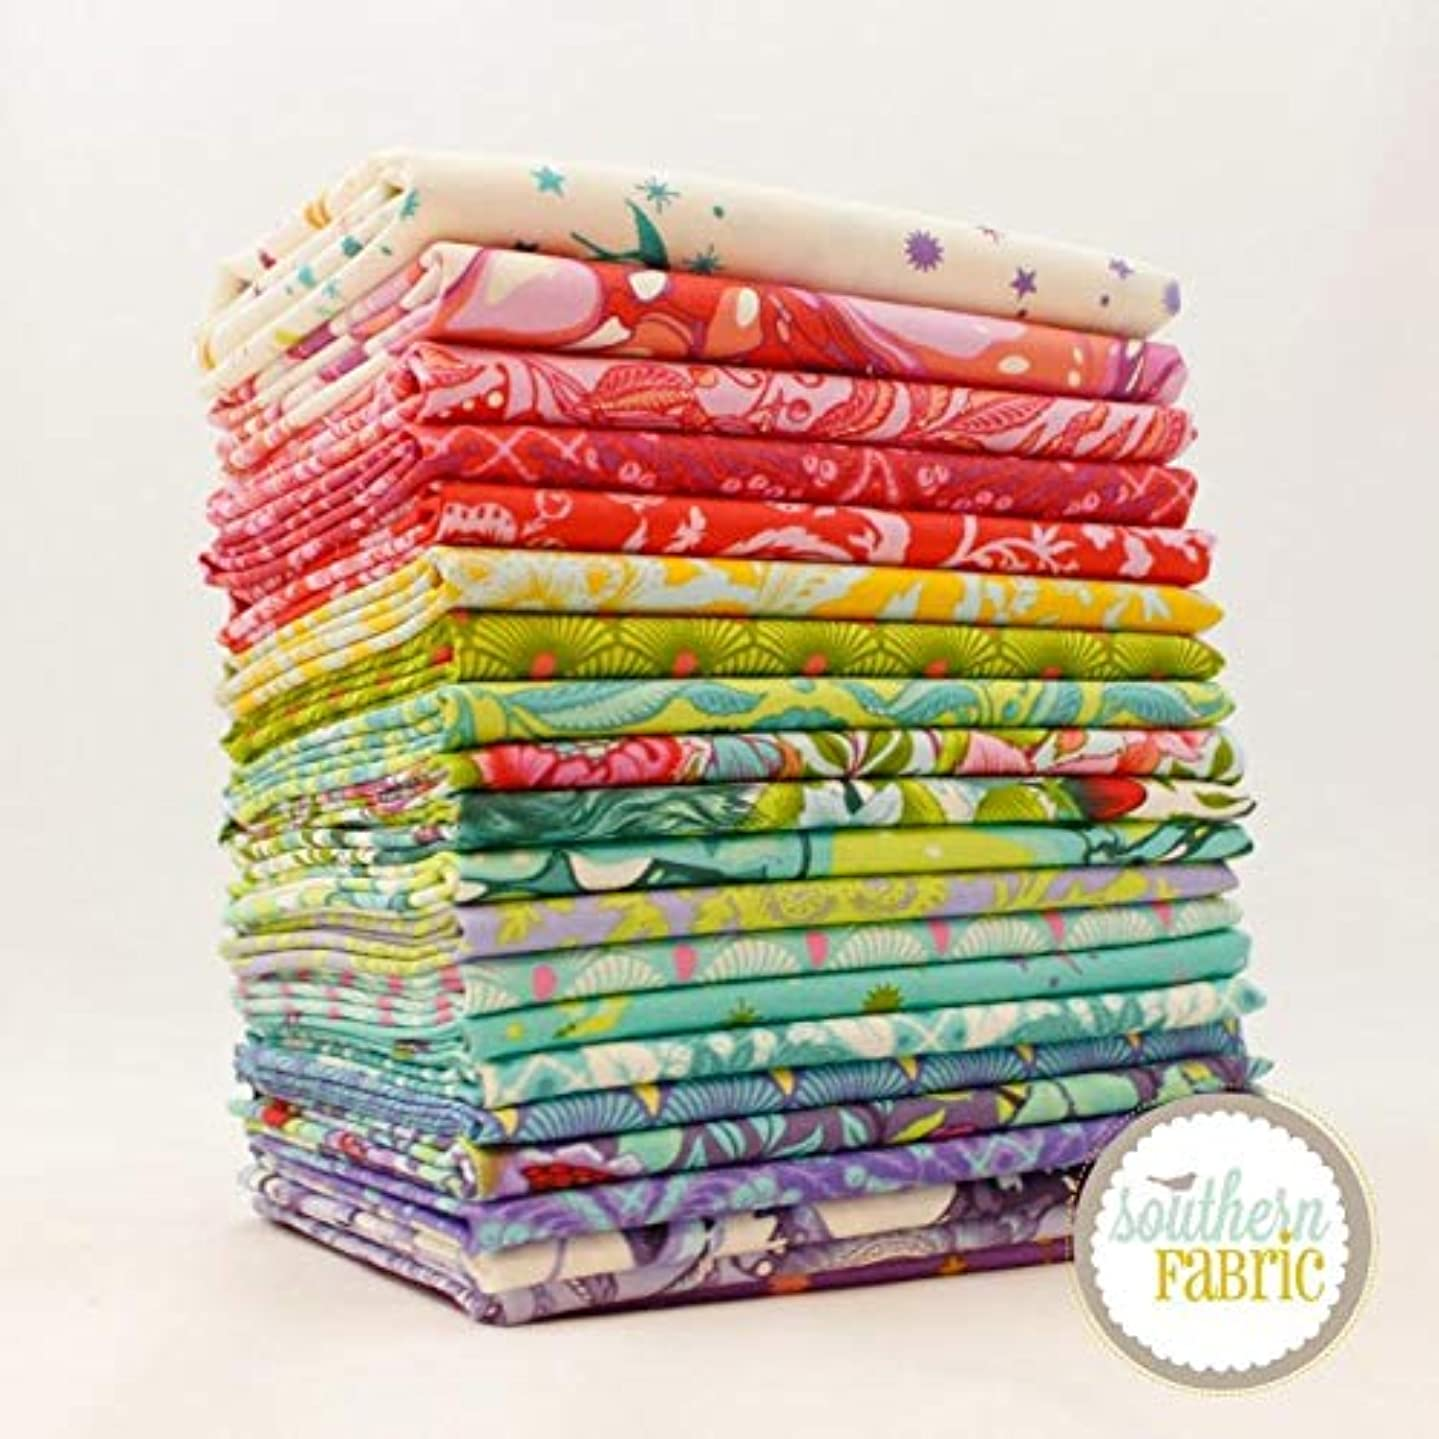 Free Spirit Pinkerville Fat Eighth Bundle (21 pcs) by Tula Pink 9 x 21 inches (22.86cm x 53.34cm) Fabric cuts DIY Quilt Fabric